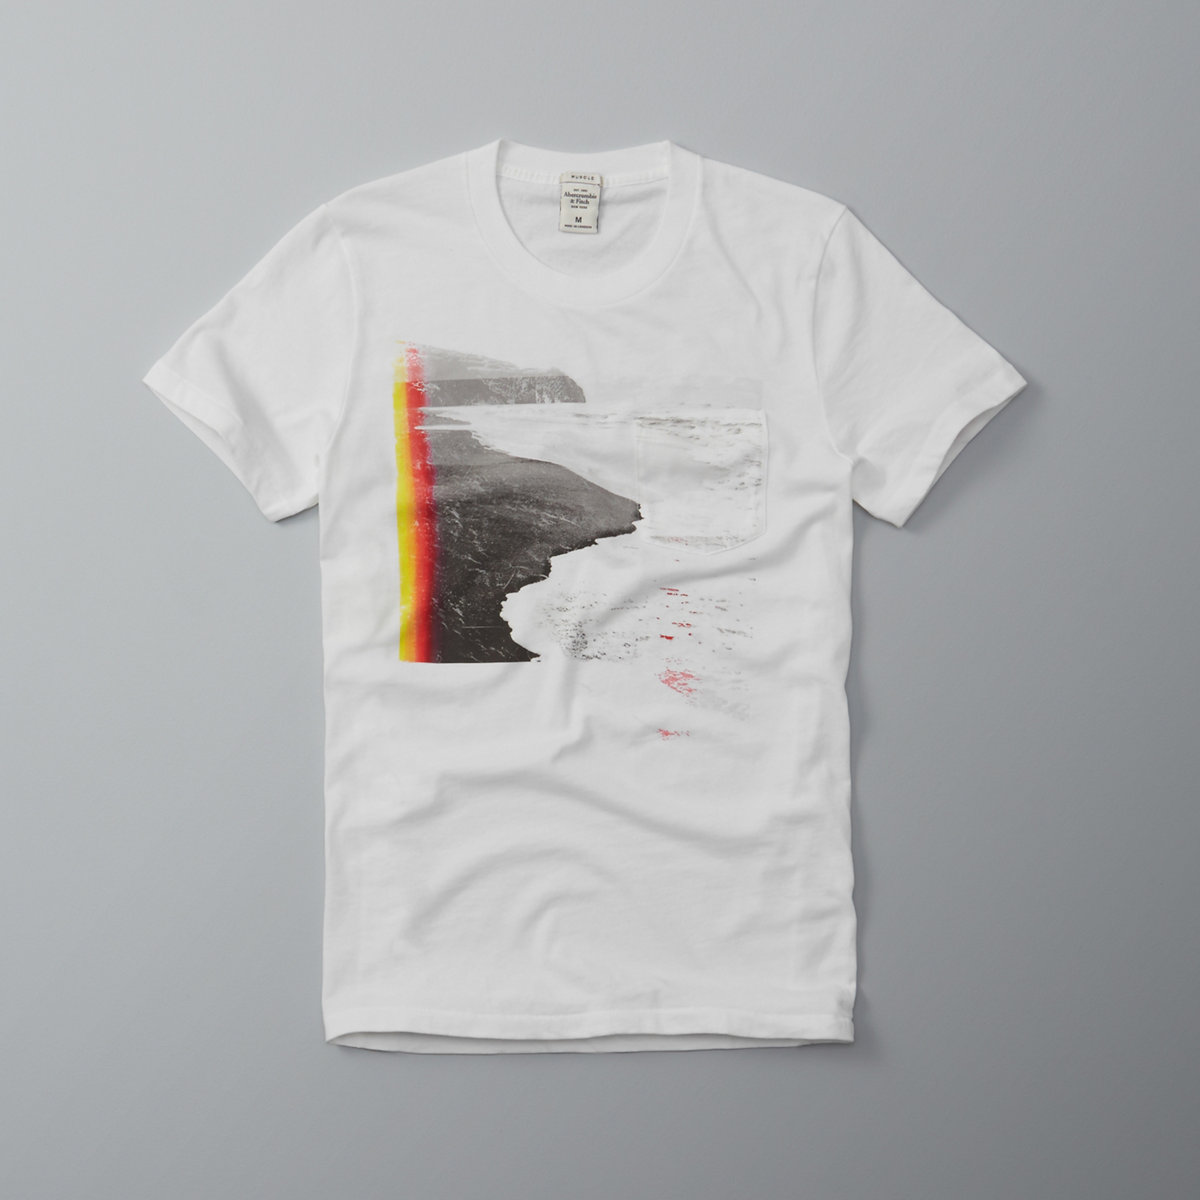 Photoreal Graphic Tee